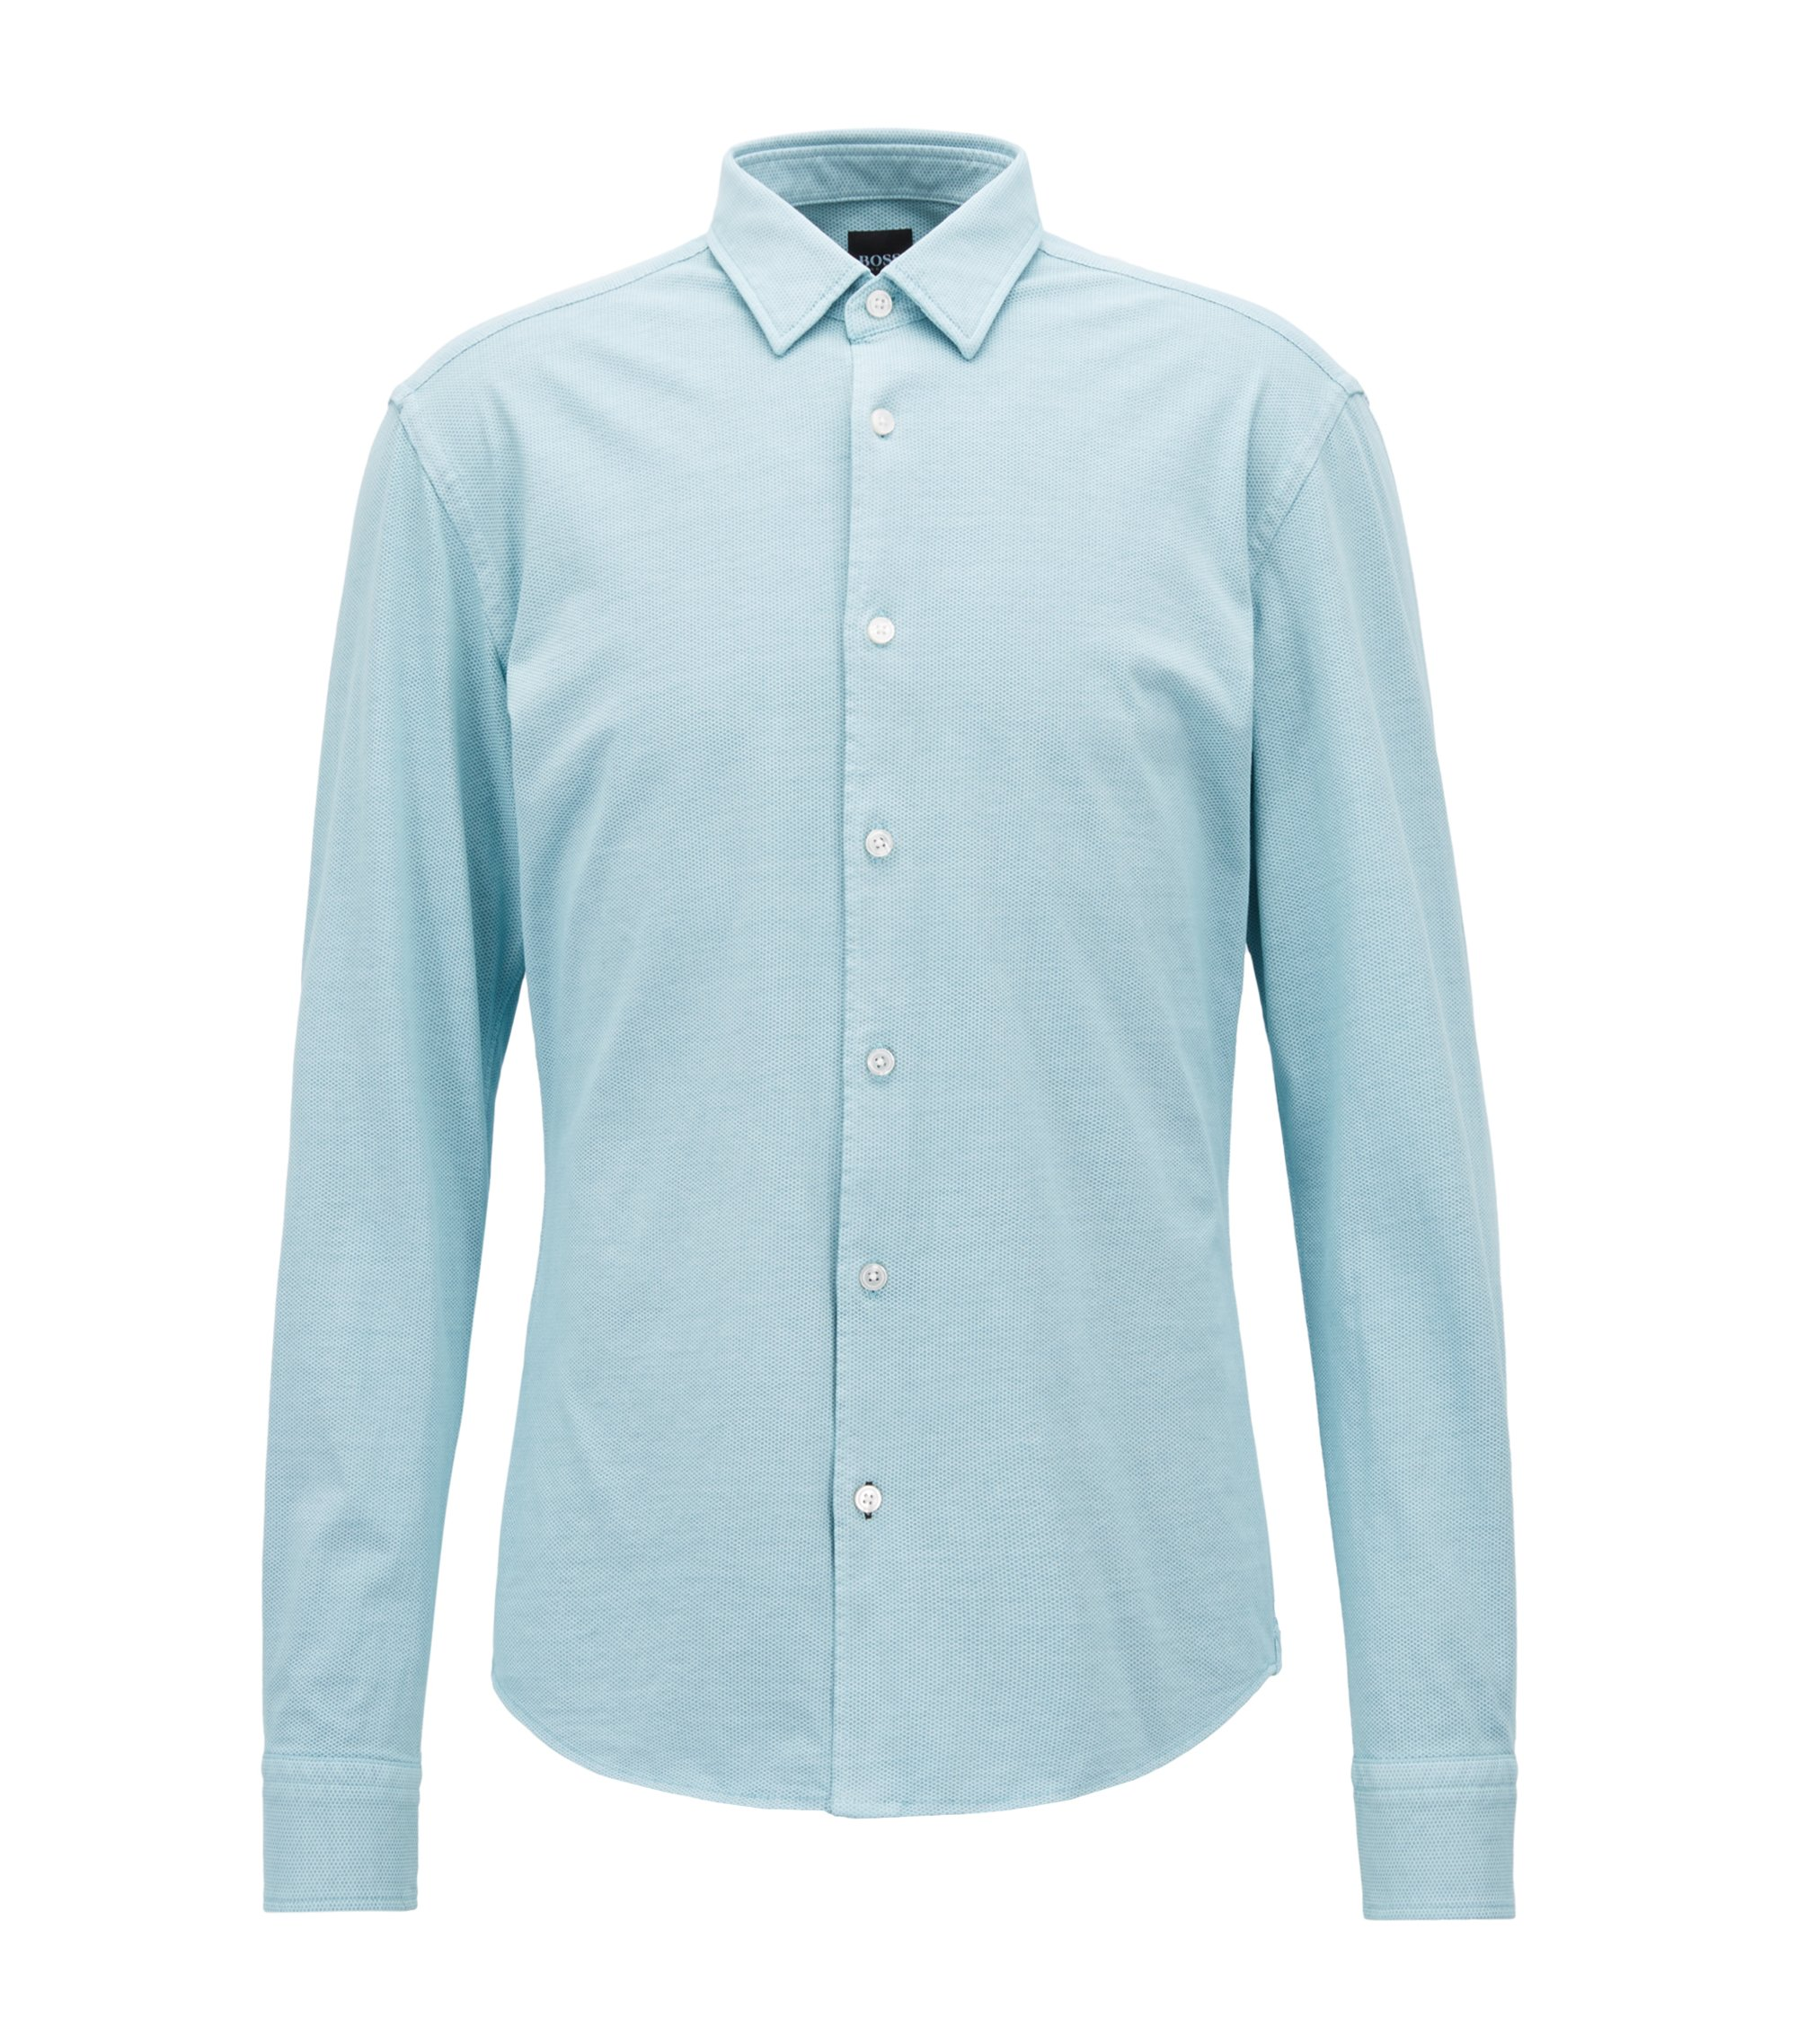 Cotton Sport Shirt, Slim Fit | Reid F, Light Blue